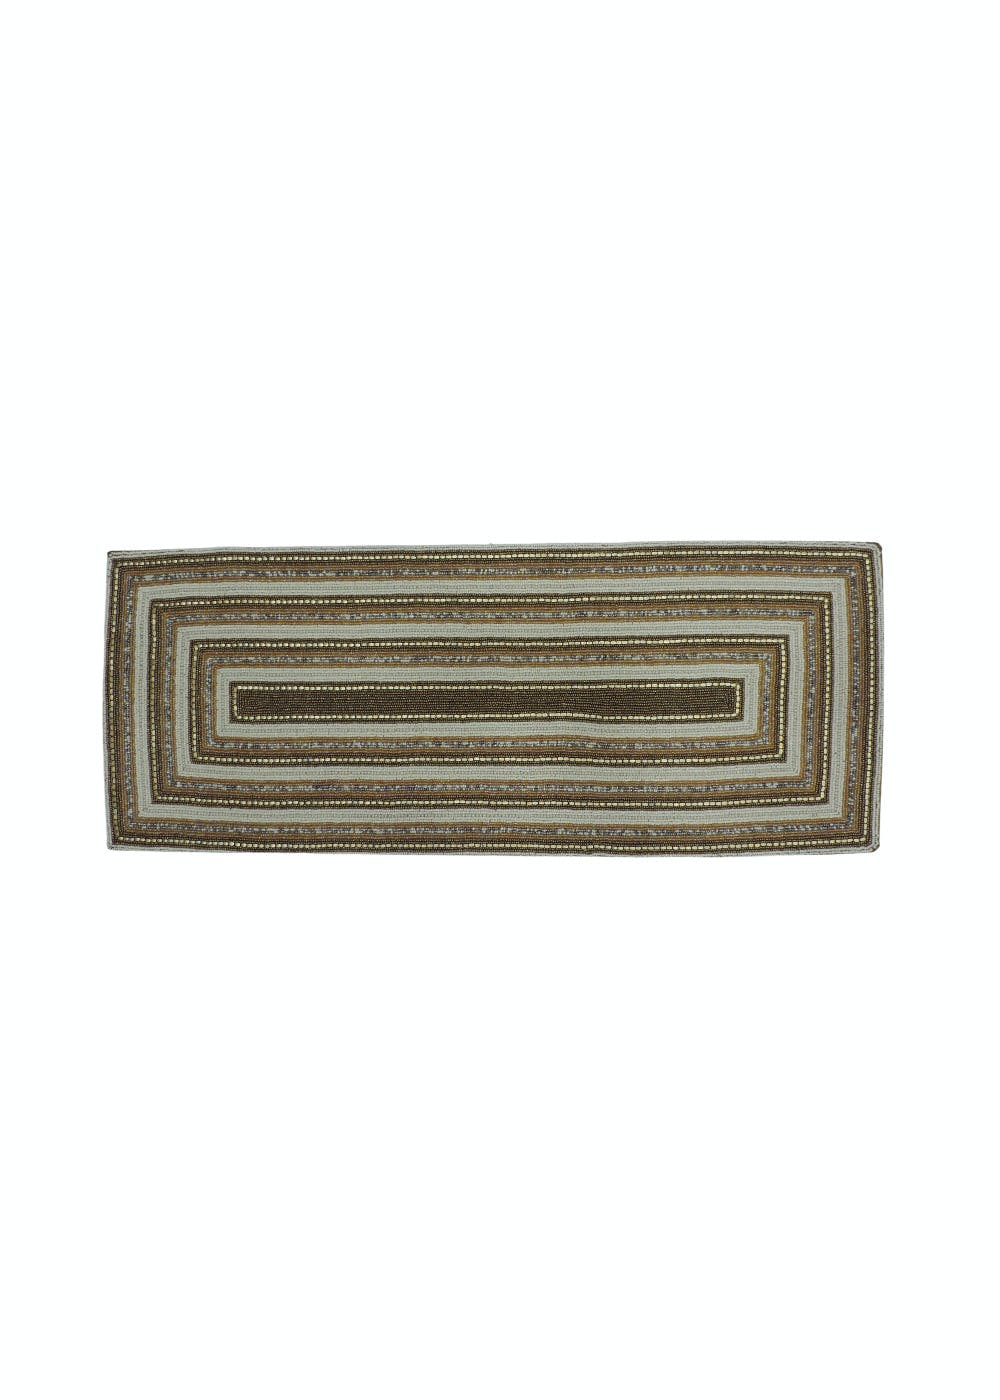 Beads Embellished Rectangle In Rectangle Table Runner